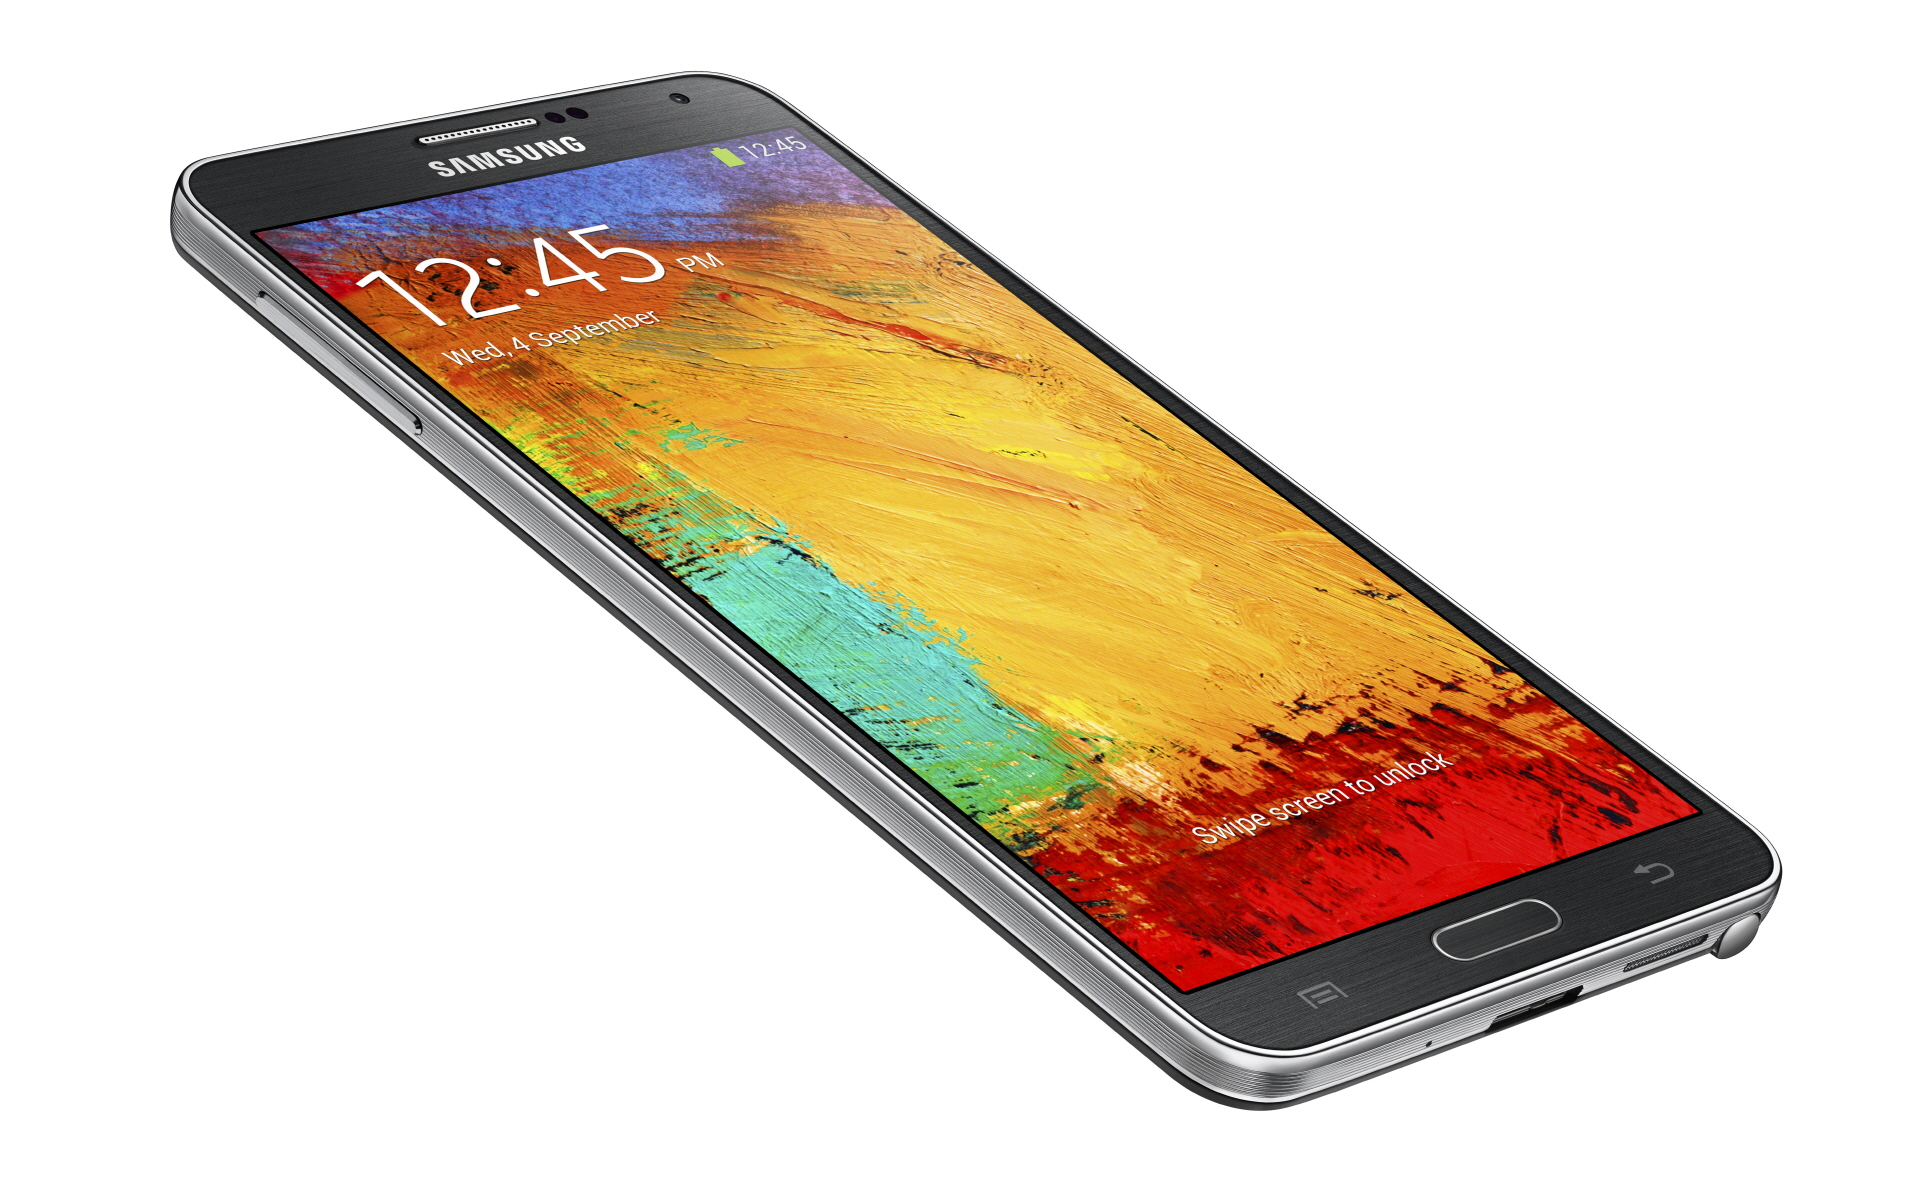 http://pdadb.net/img/gallery/big/samsung_galaxy_note_3_021_front_dynamic2_jet_black.jpg